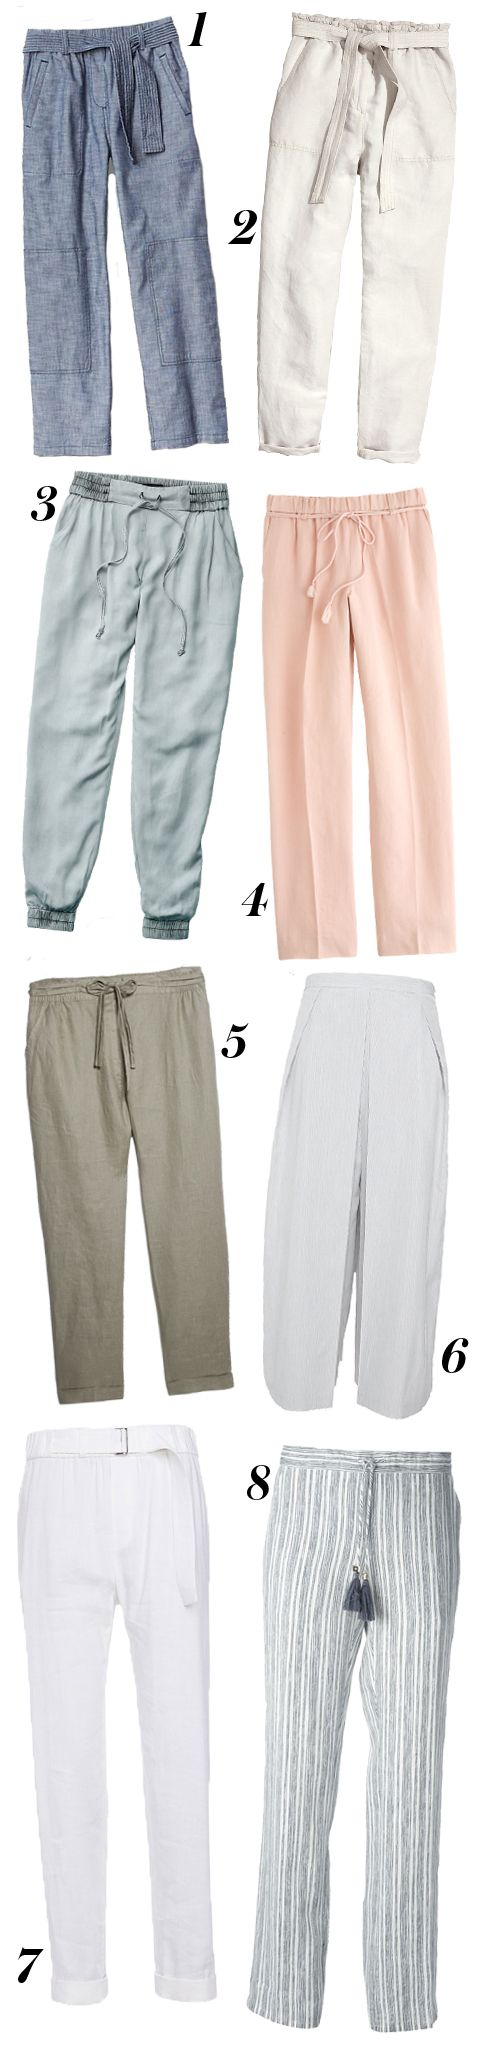 Before the heat waves hit, trade in your frilly skirts and short-shorts for some airy, lightweight pants. Shop our favorites here.